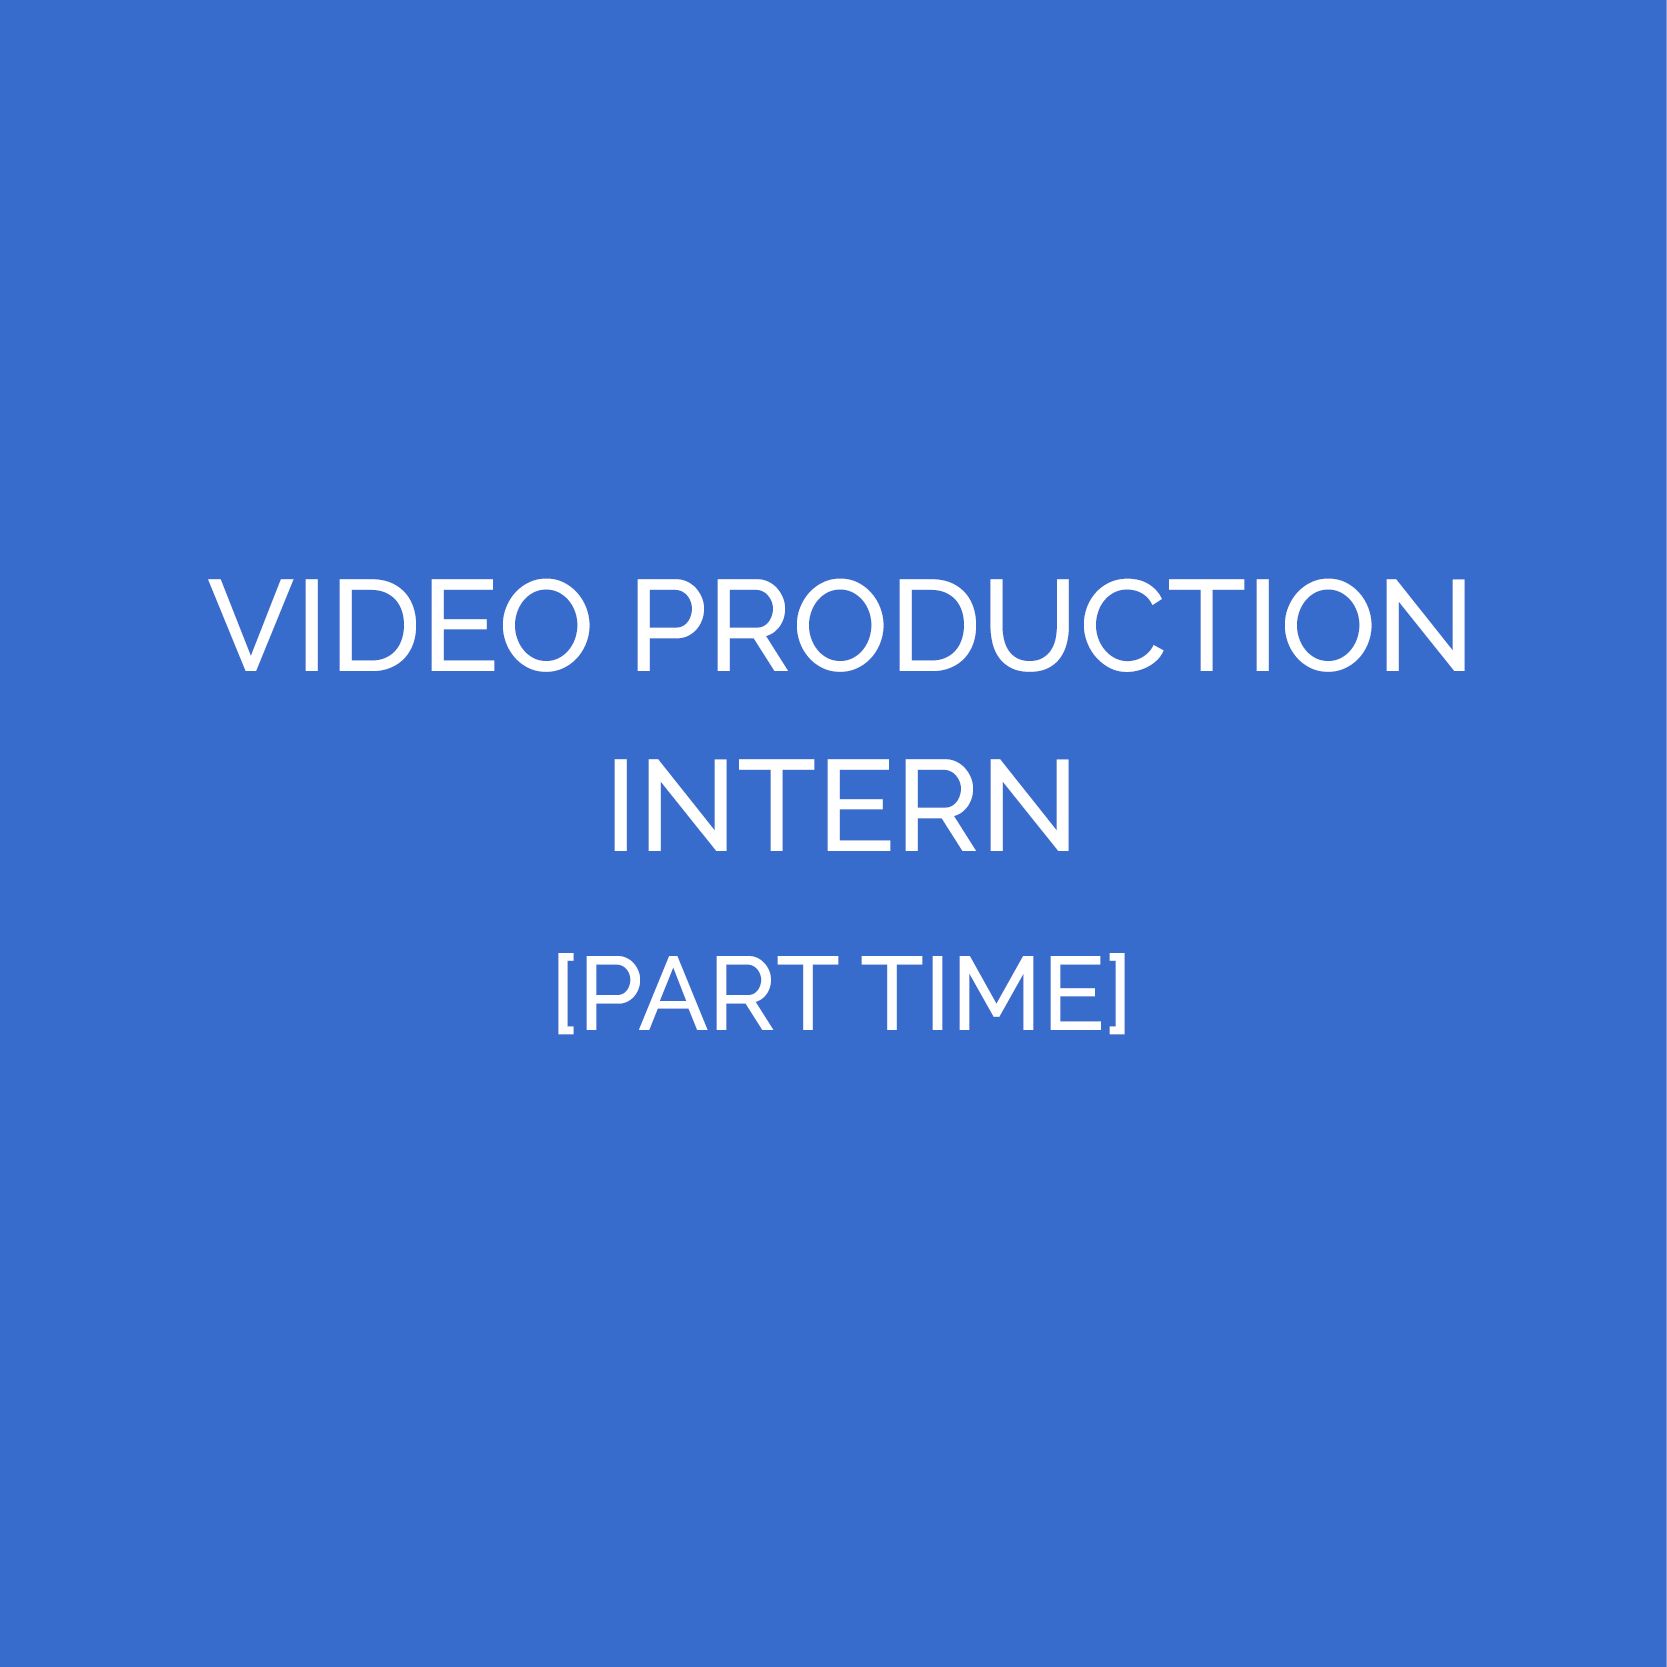 Video-Production-Intern-Part-Time